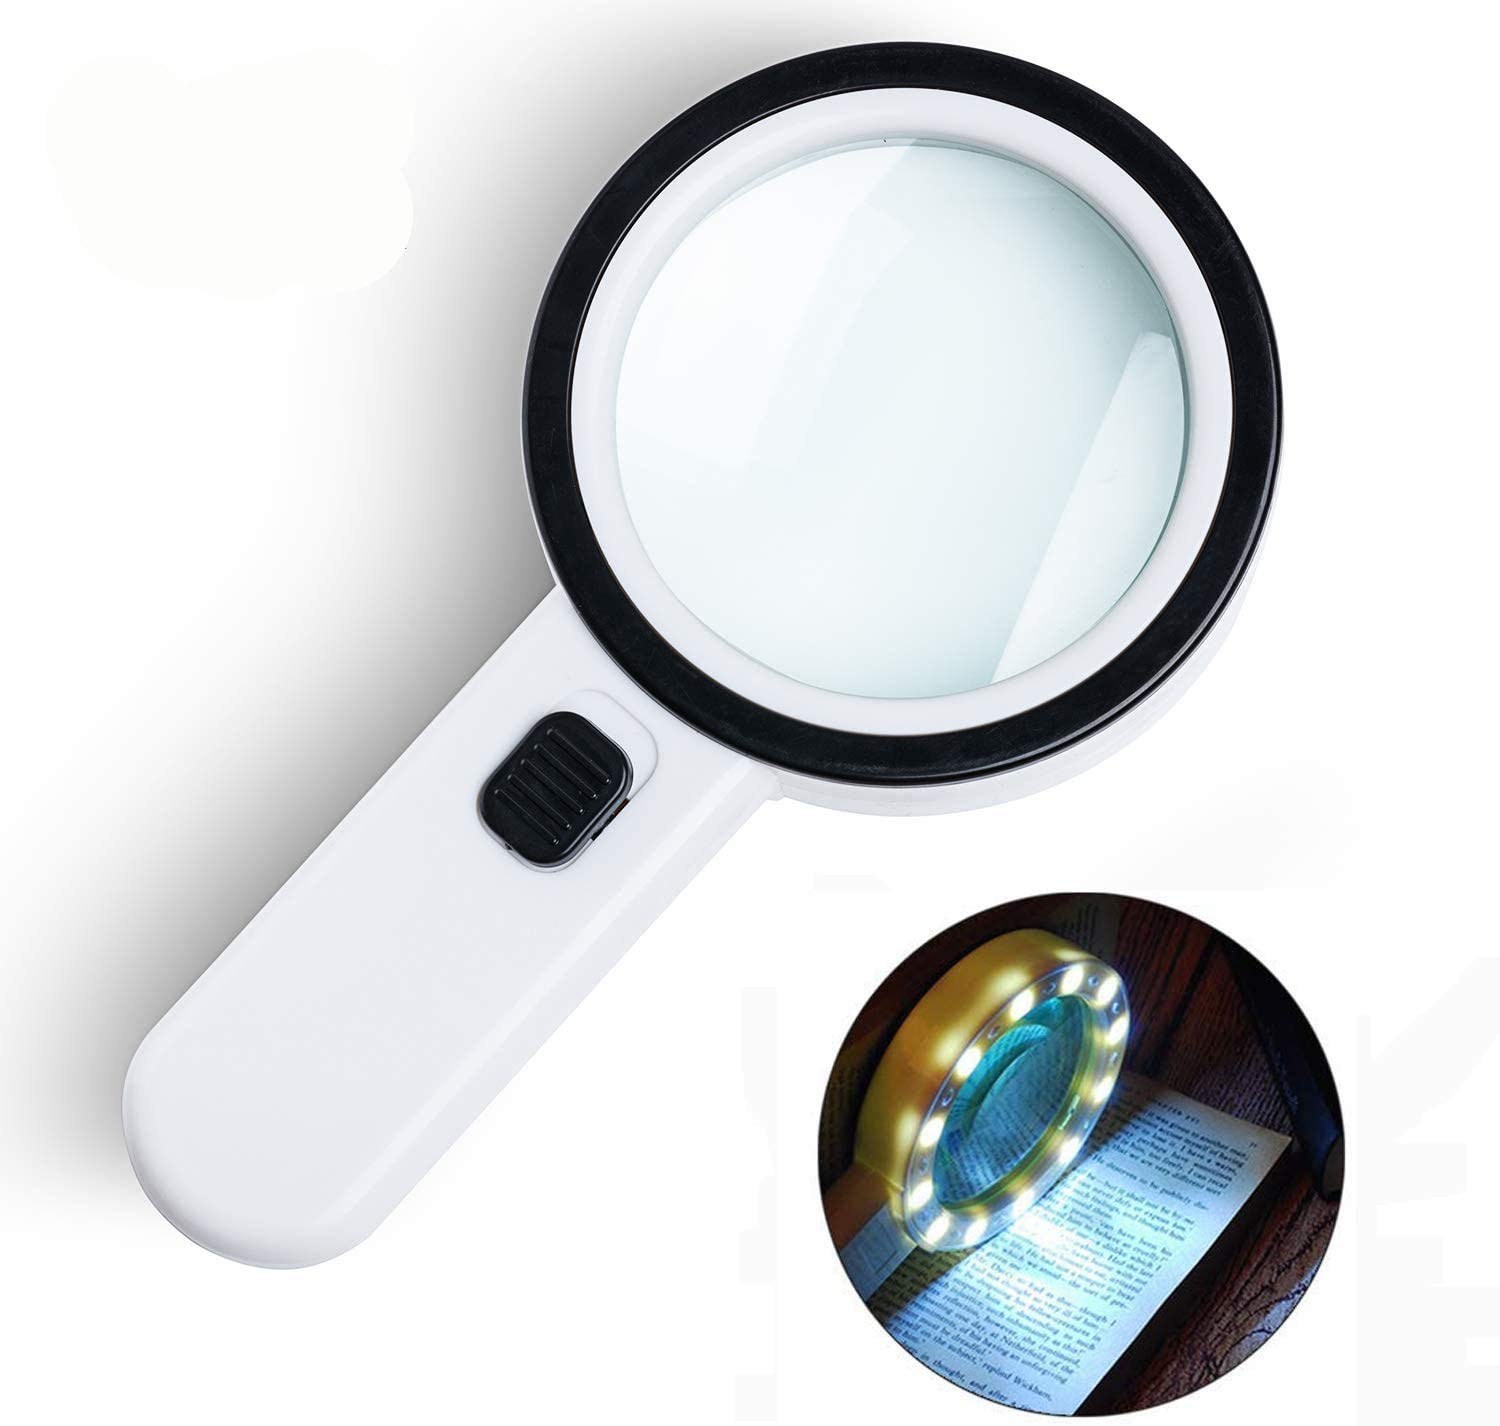 Magnifying Glass with Light, 30X Handheld Large Magnifying Glass 12 LED Illuminated Lighted Magnifier for Macular Degeneration, Seniors Reading, Soldering, Inspection, Coins, Jewelry, Exploring